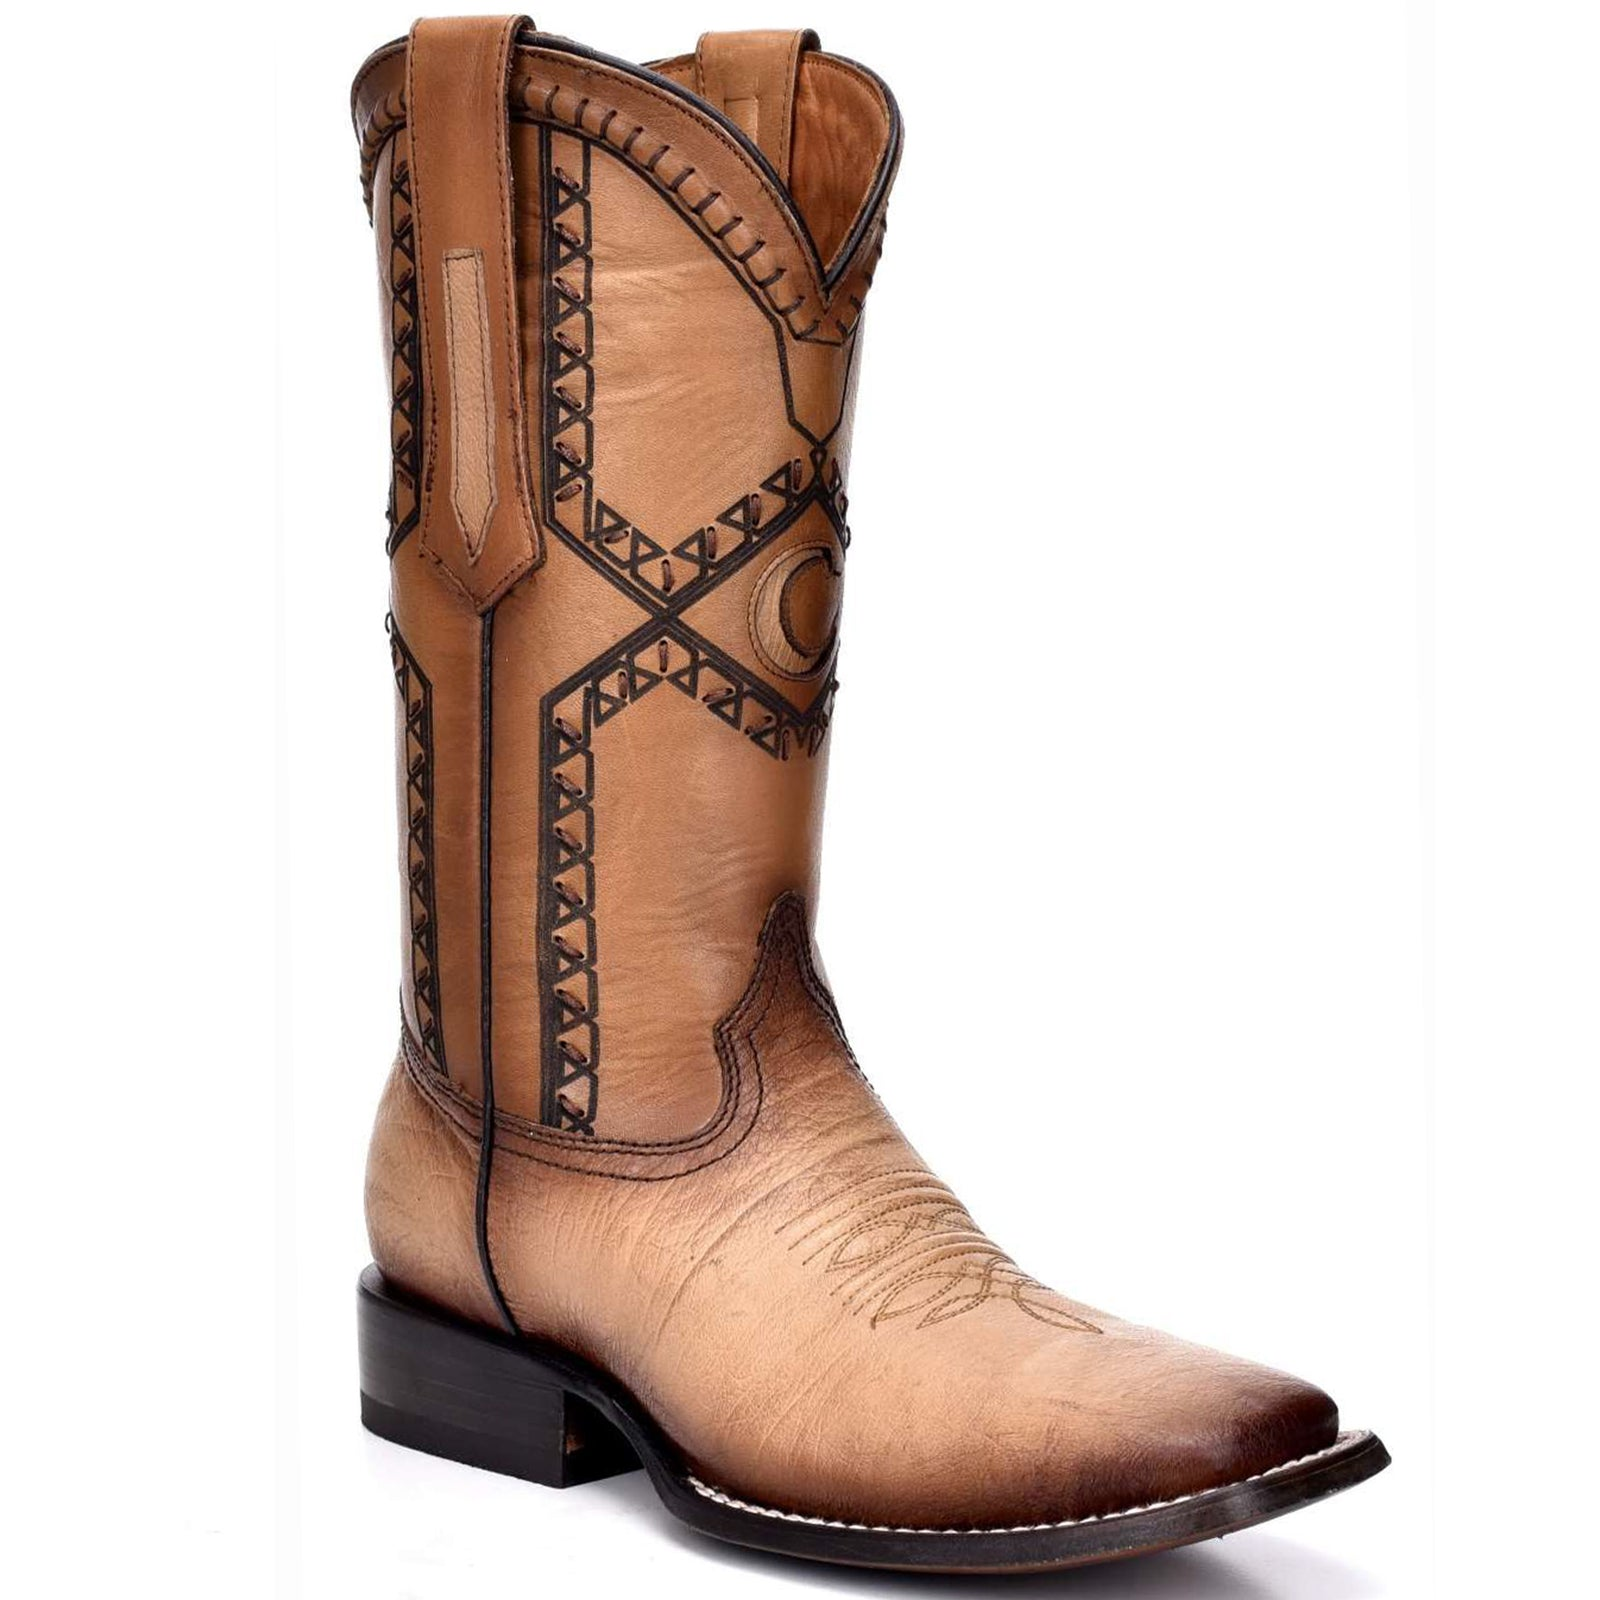 Cuadra Ostrich Belly Wide Square Toe Oryx Cowboy Boots